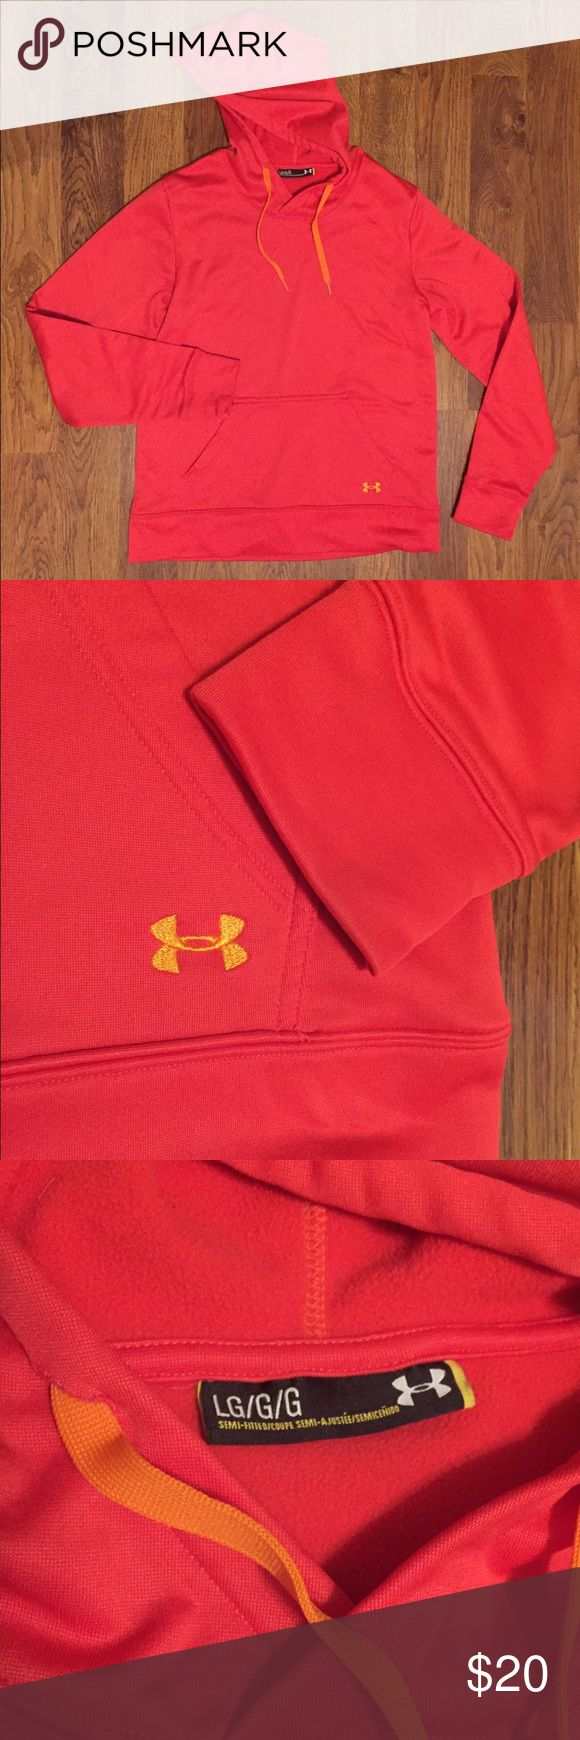 Underarmour Hoodie Burnt orange/red women's hoodie, in good condition, no stains or holes. Make an offer or bundle!! Under Armour Tops Sweatshirts & Hoodies